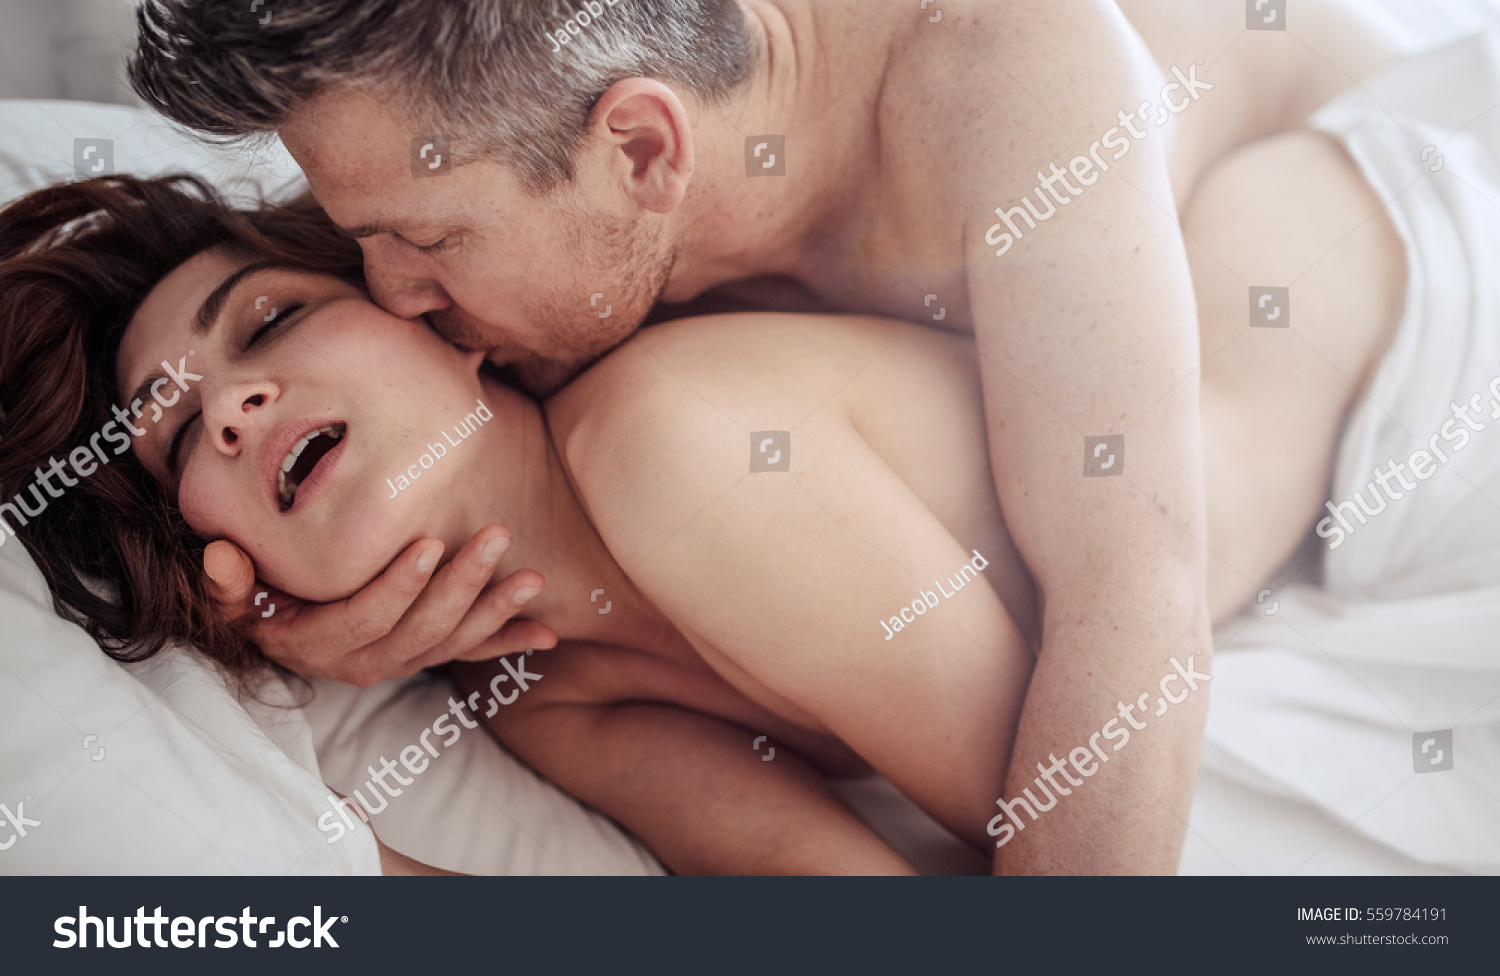 Intimate Lovers Caressing Making Love Bed Stock Photo -8220